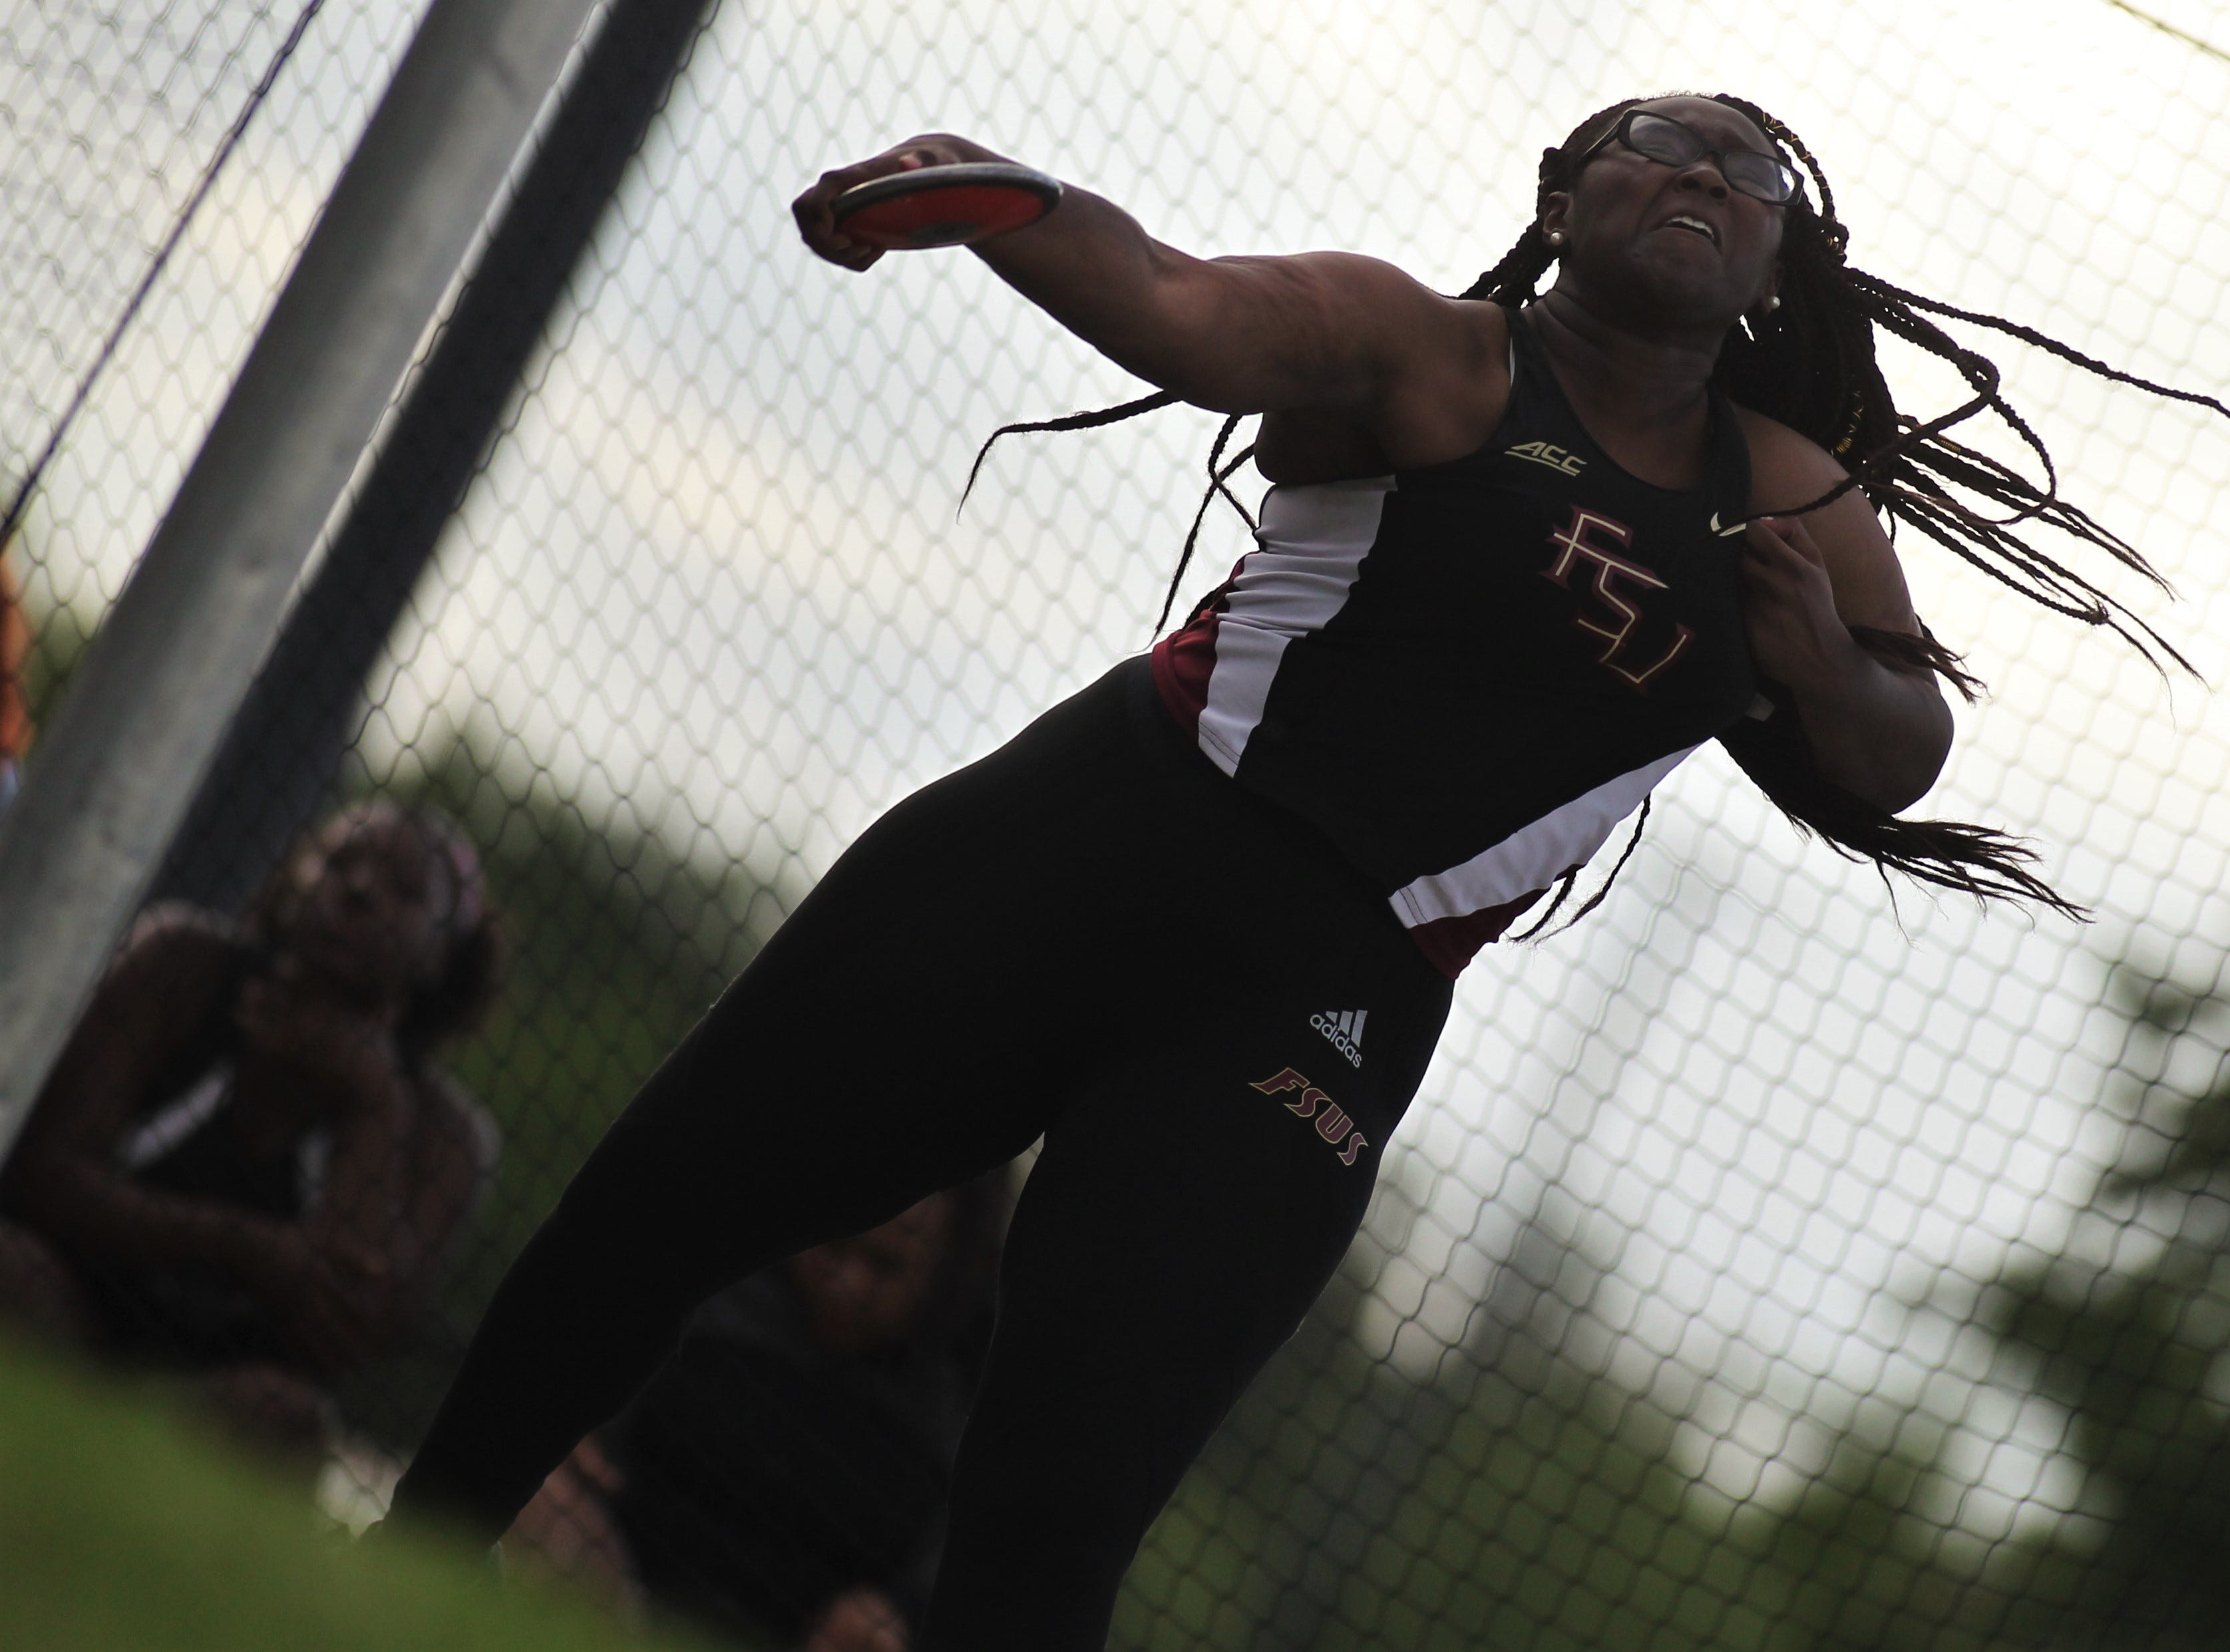 Florida High's Antonia Thomas throws discus during District 3-1A and 2-2A track and field meets at Florida High on Saturday, April 13, 2019.